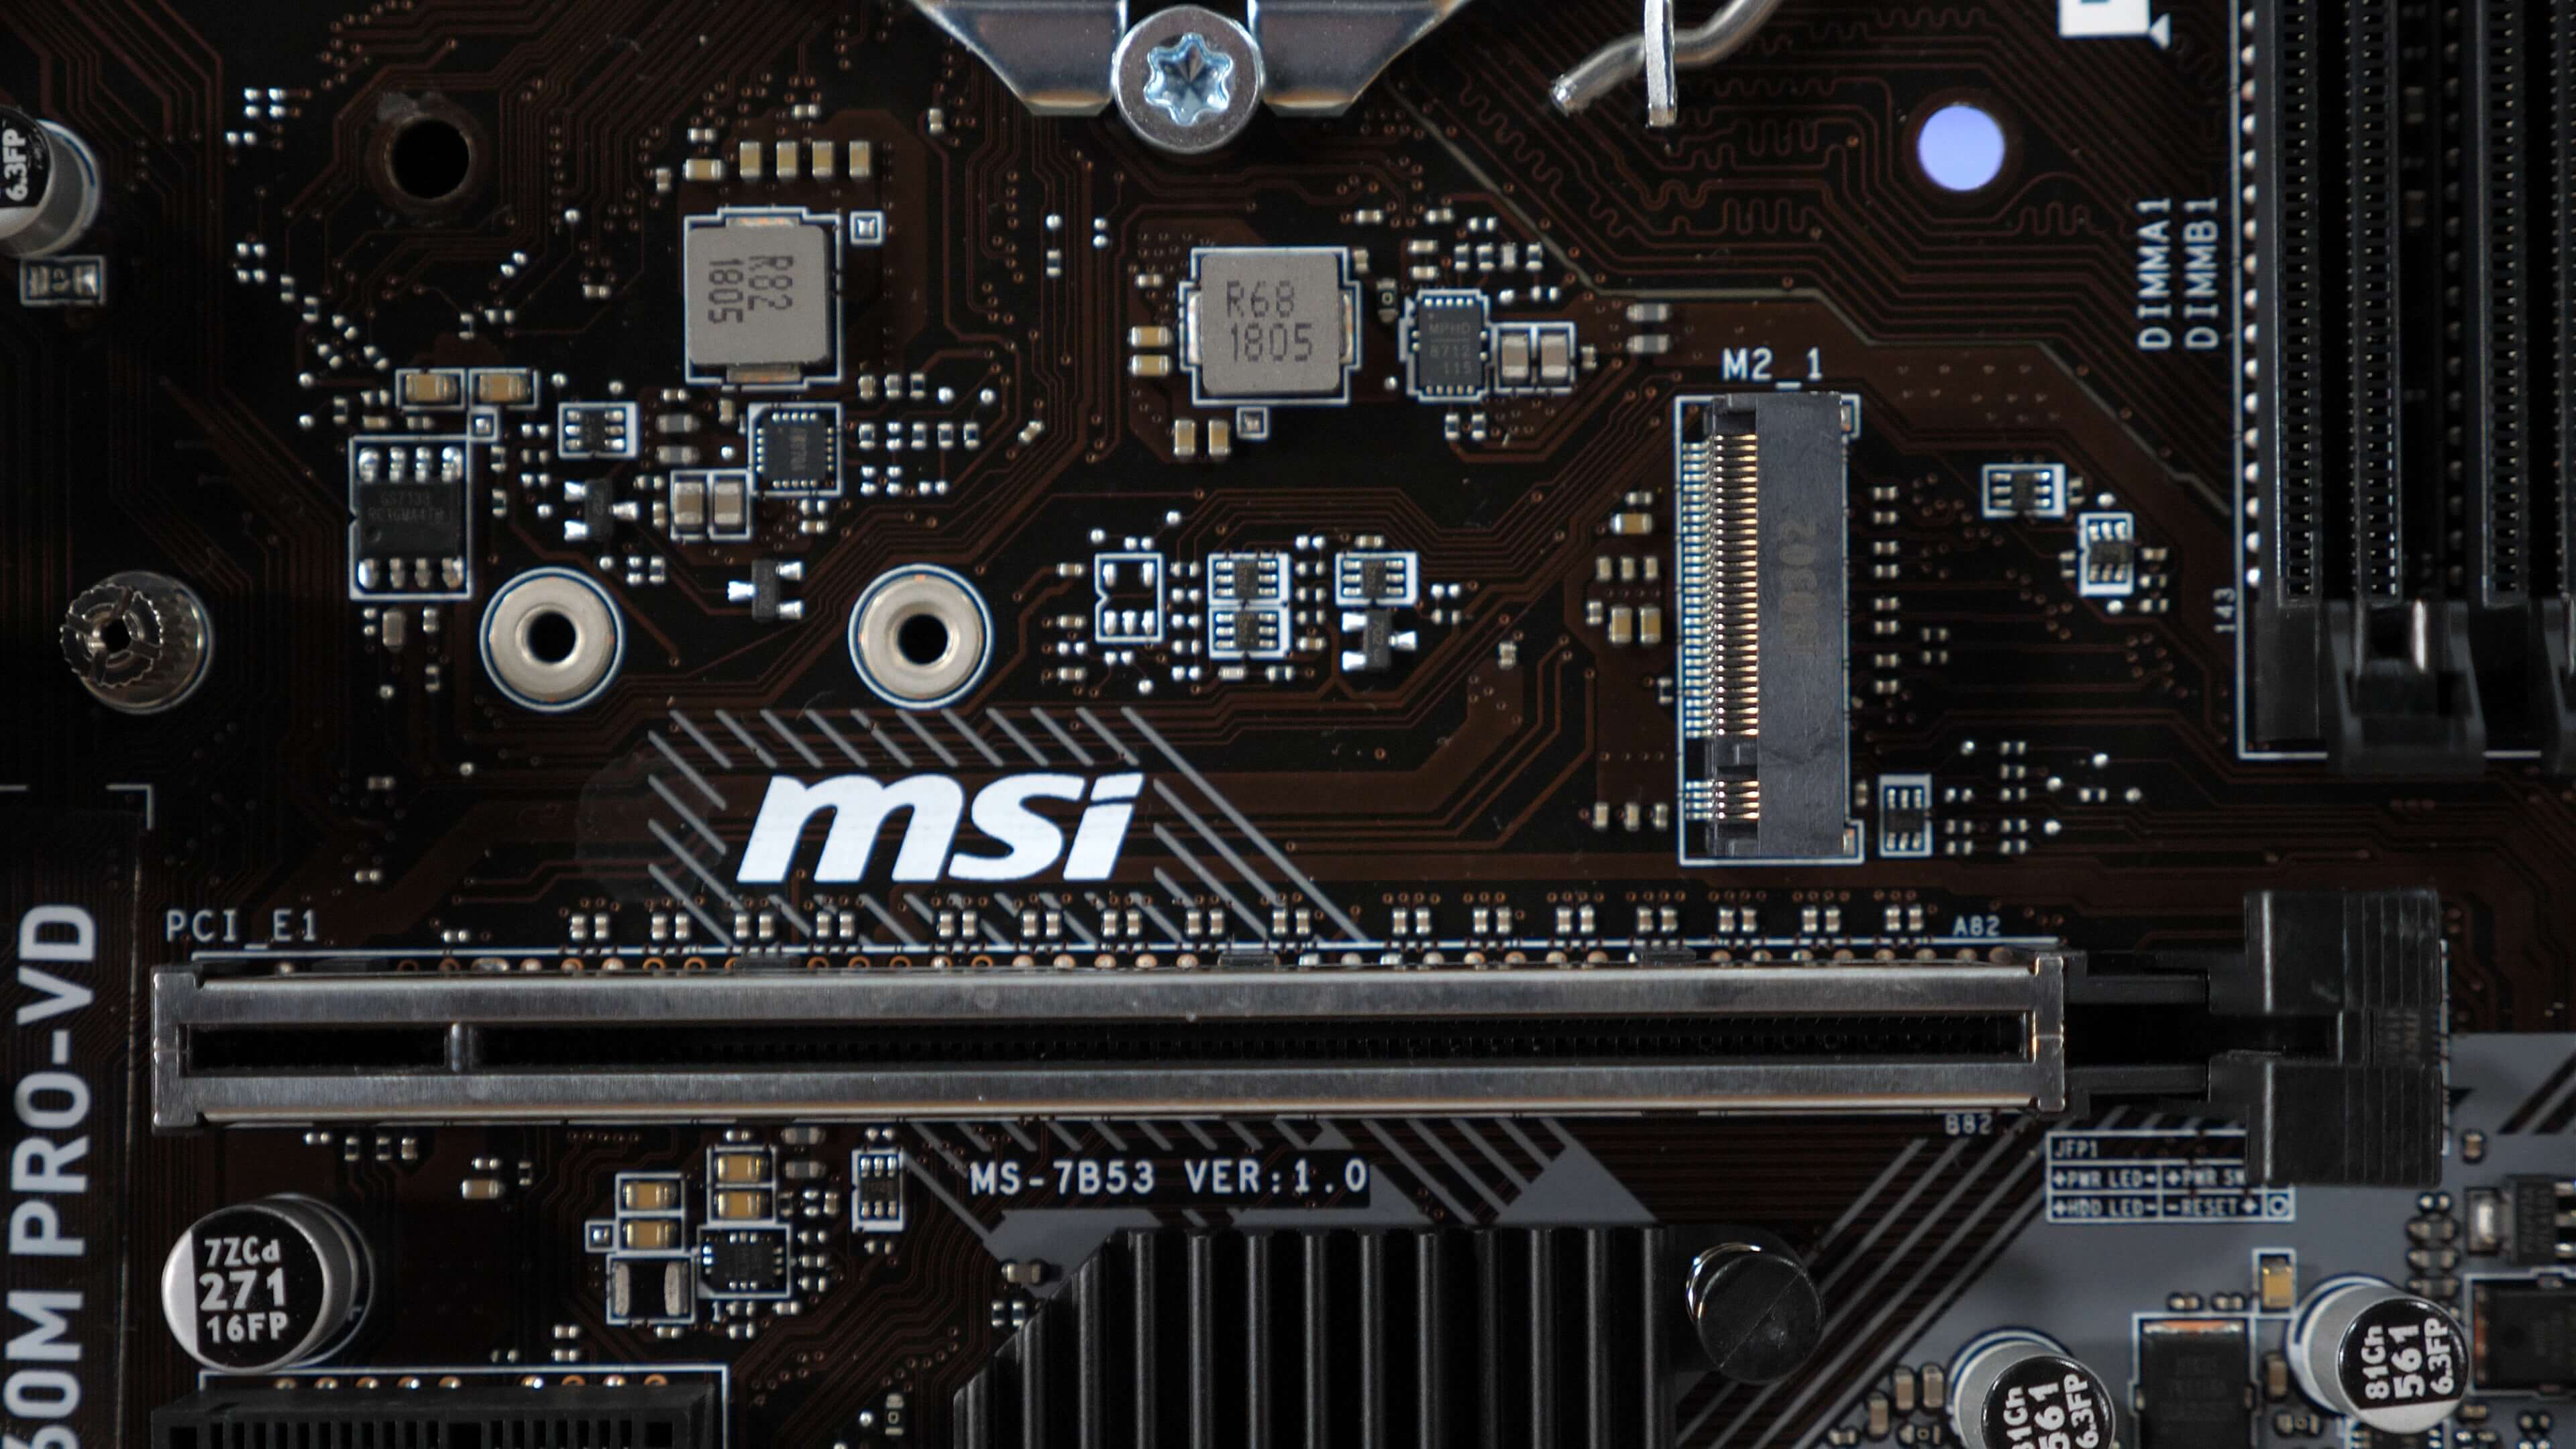 Intel B360 Vs Z370 Chipset Finally An 8th Gen Budget Platform The Diagrams Identify Main Components Of Intelr Desktop Board Now Vrm Is Most Concerning Aspect This But Before Getting Too Carried Away We Do Realize There Arent Many If Any You Reading